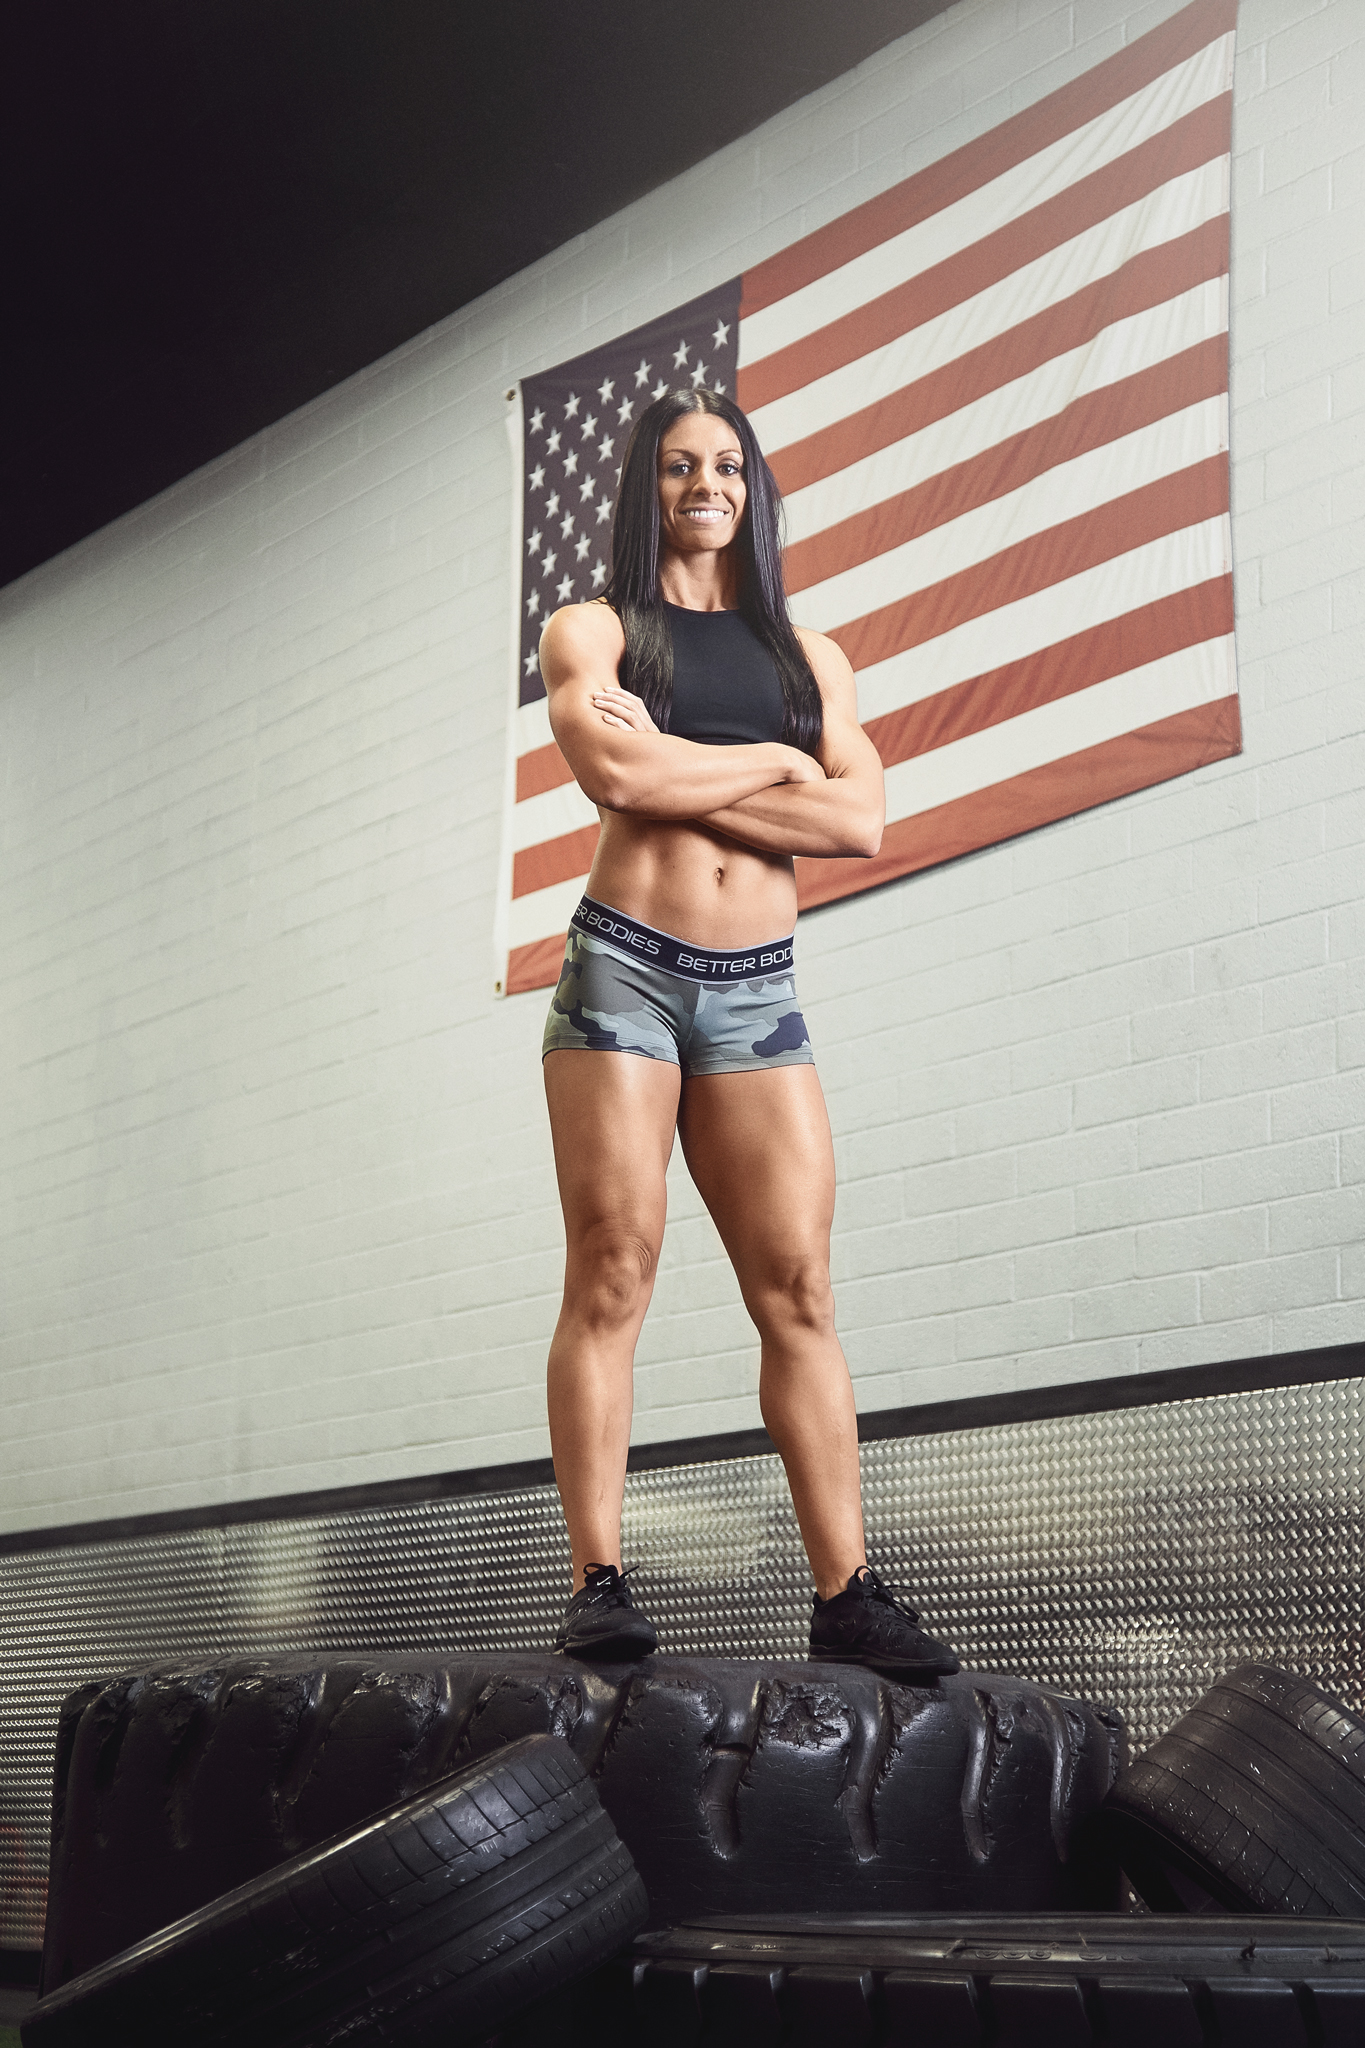 Fitness Competitor Photoshoot - April Bleicher